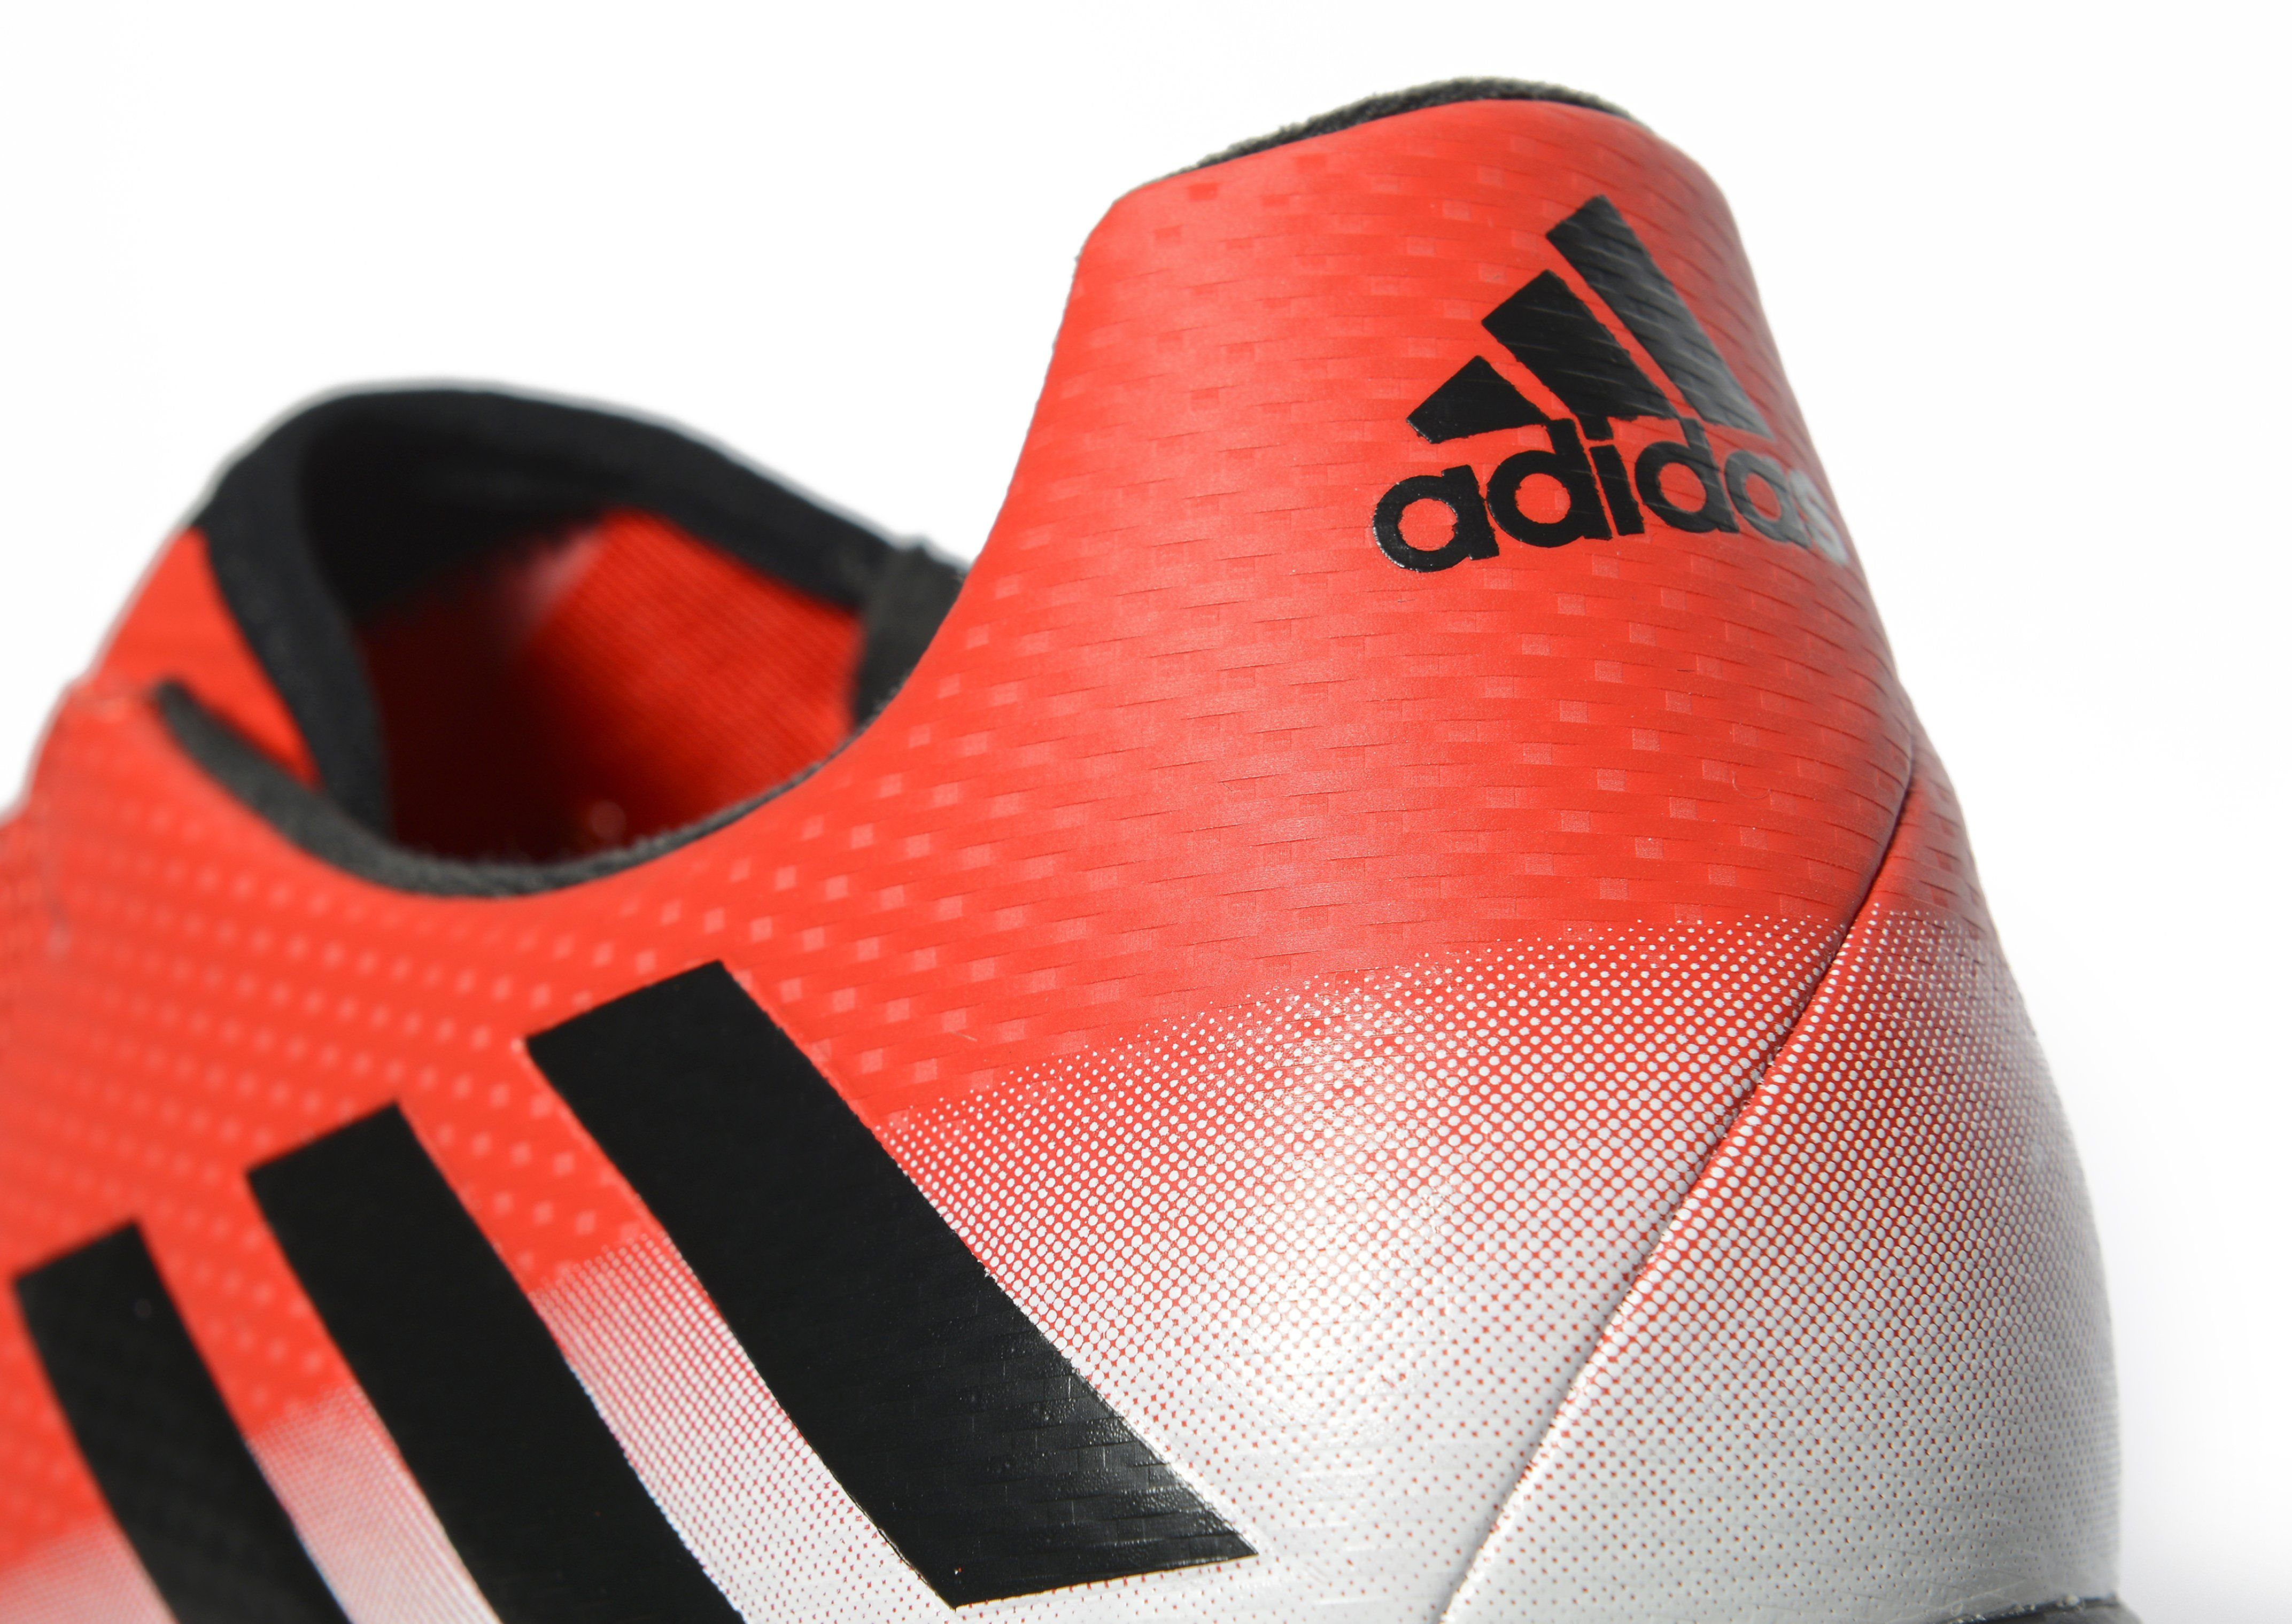 Adidas Red Limit Messi 16 3 Turf Jd Sports